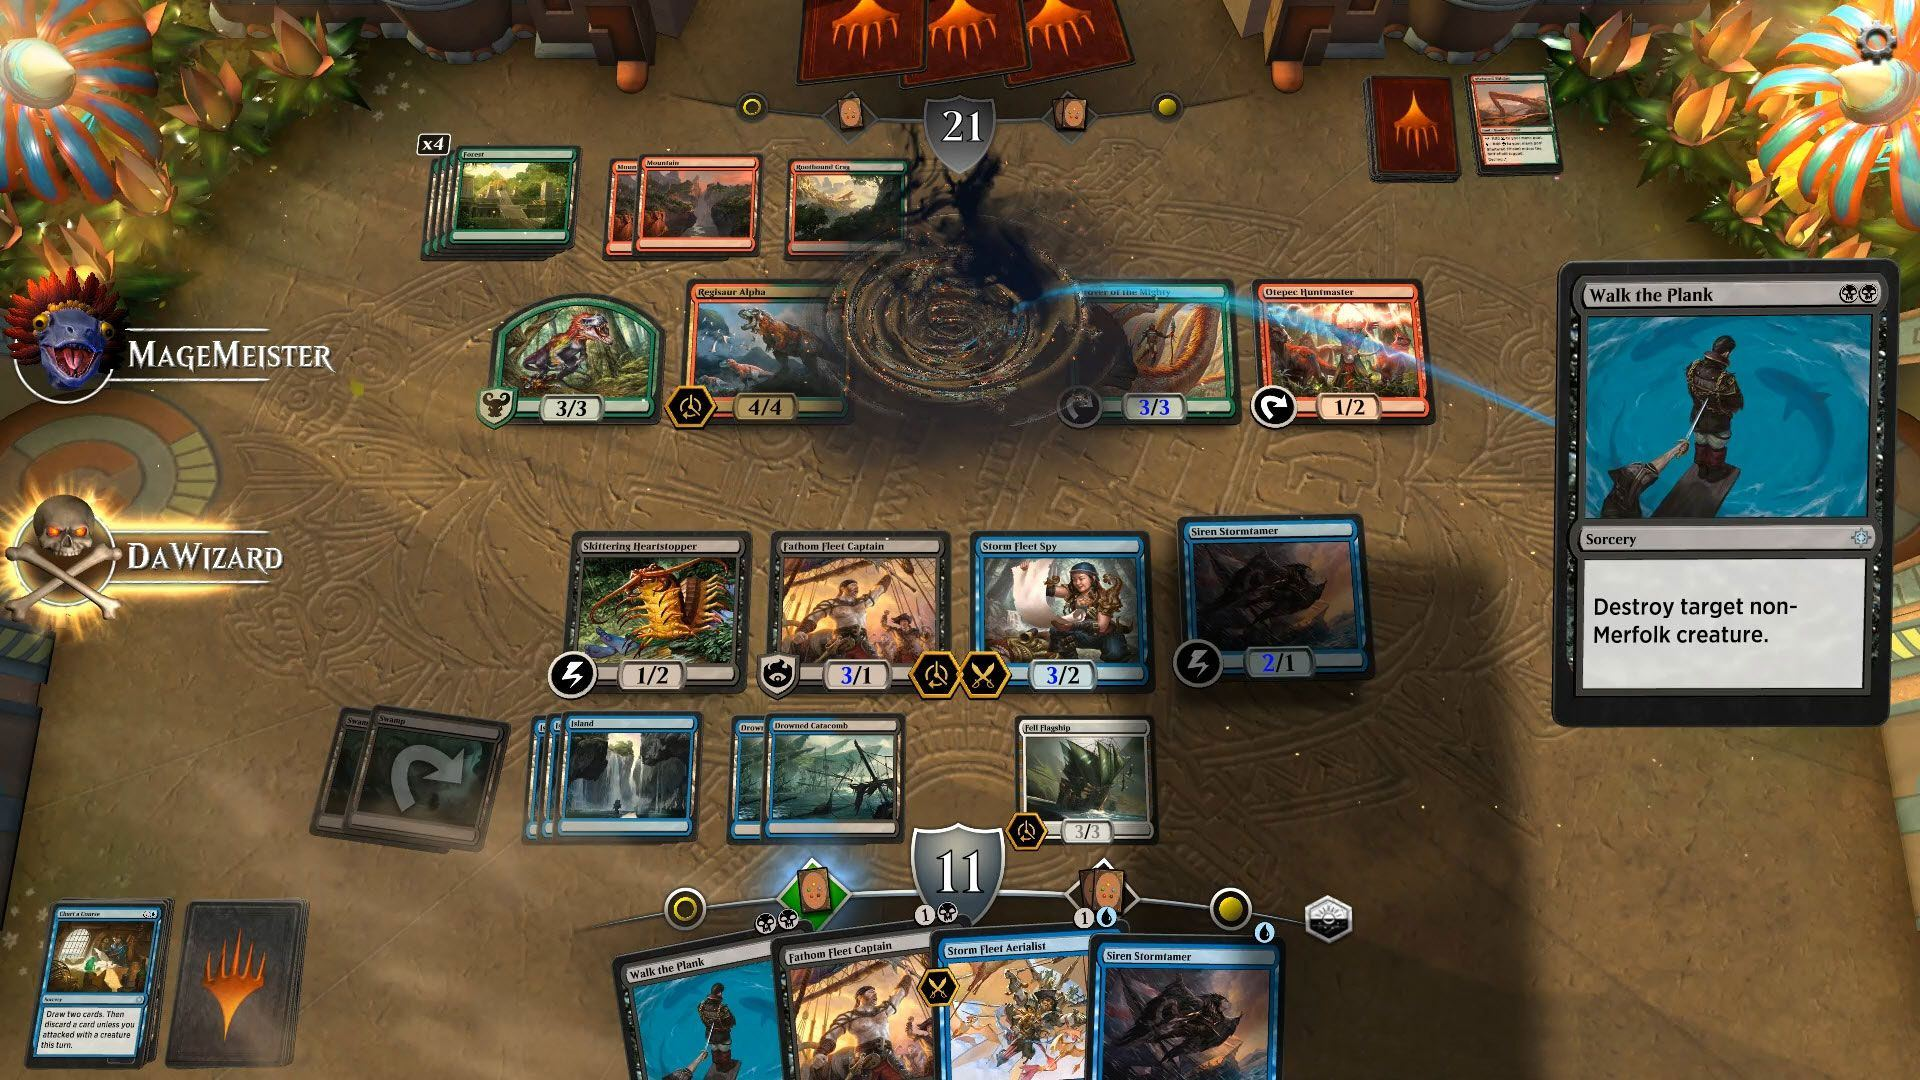 New Magic: The Gathering Arena PC game